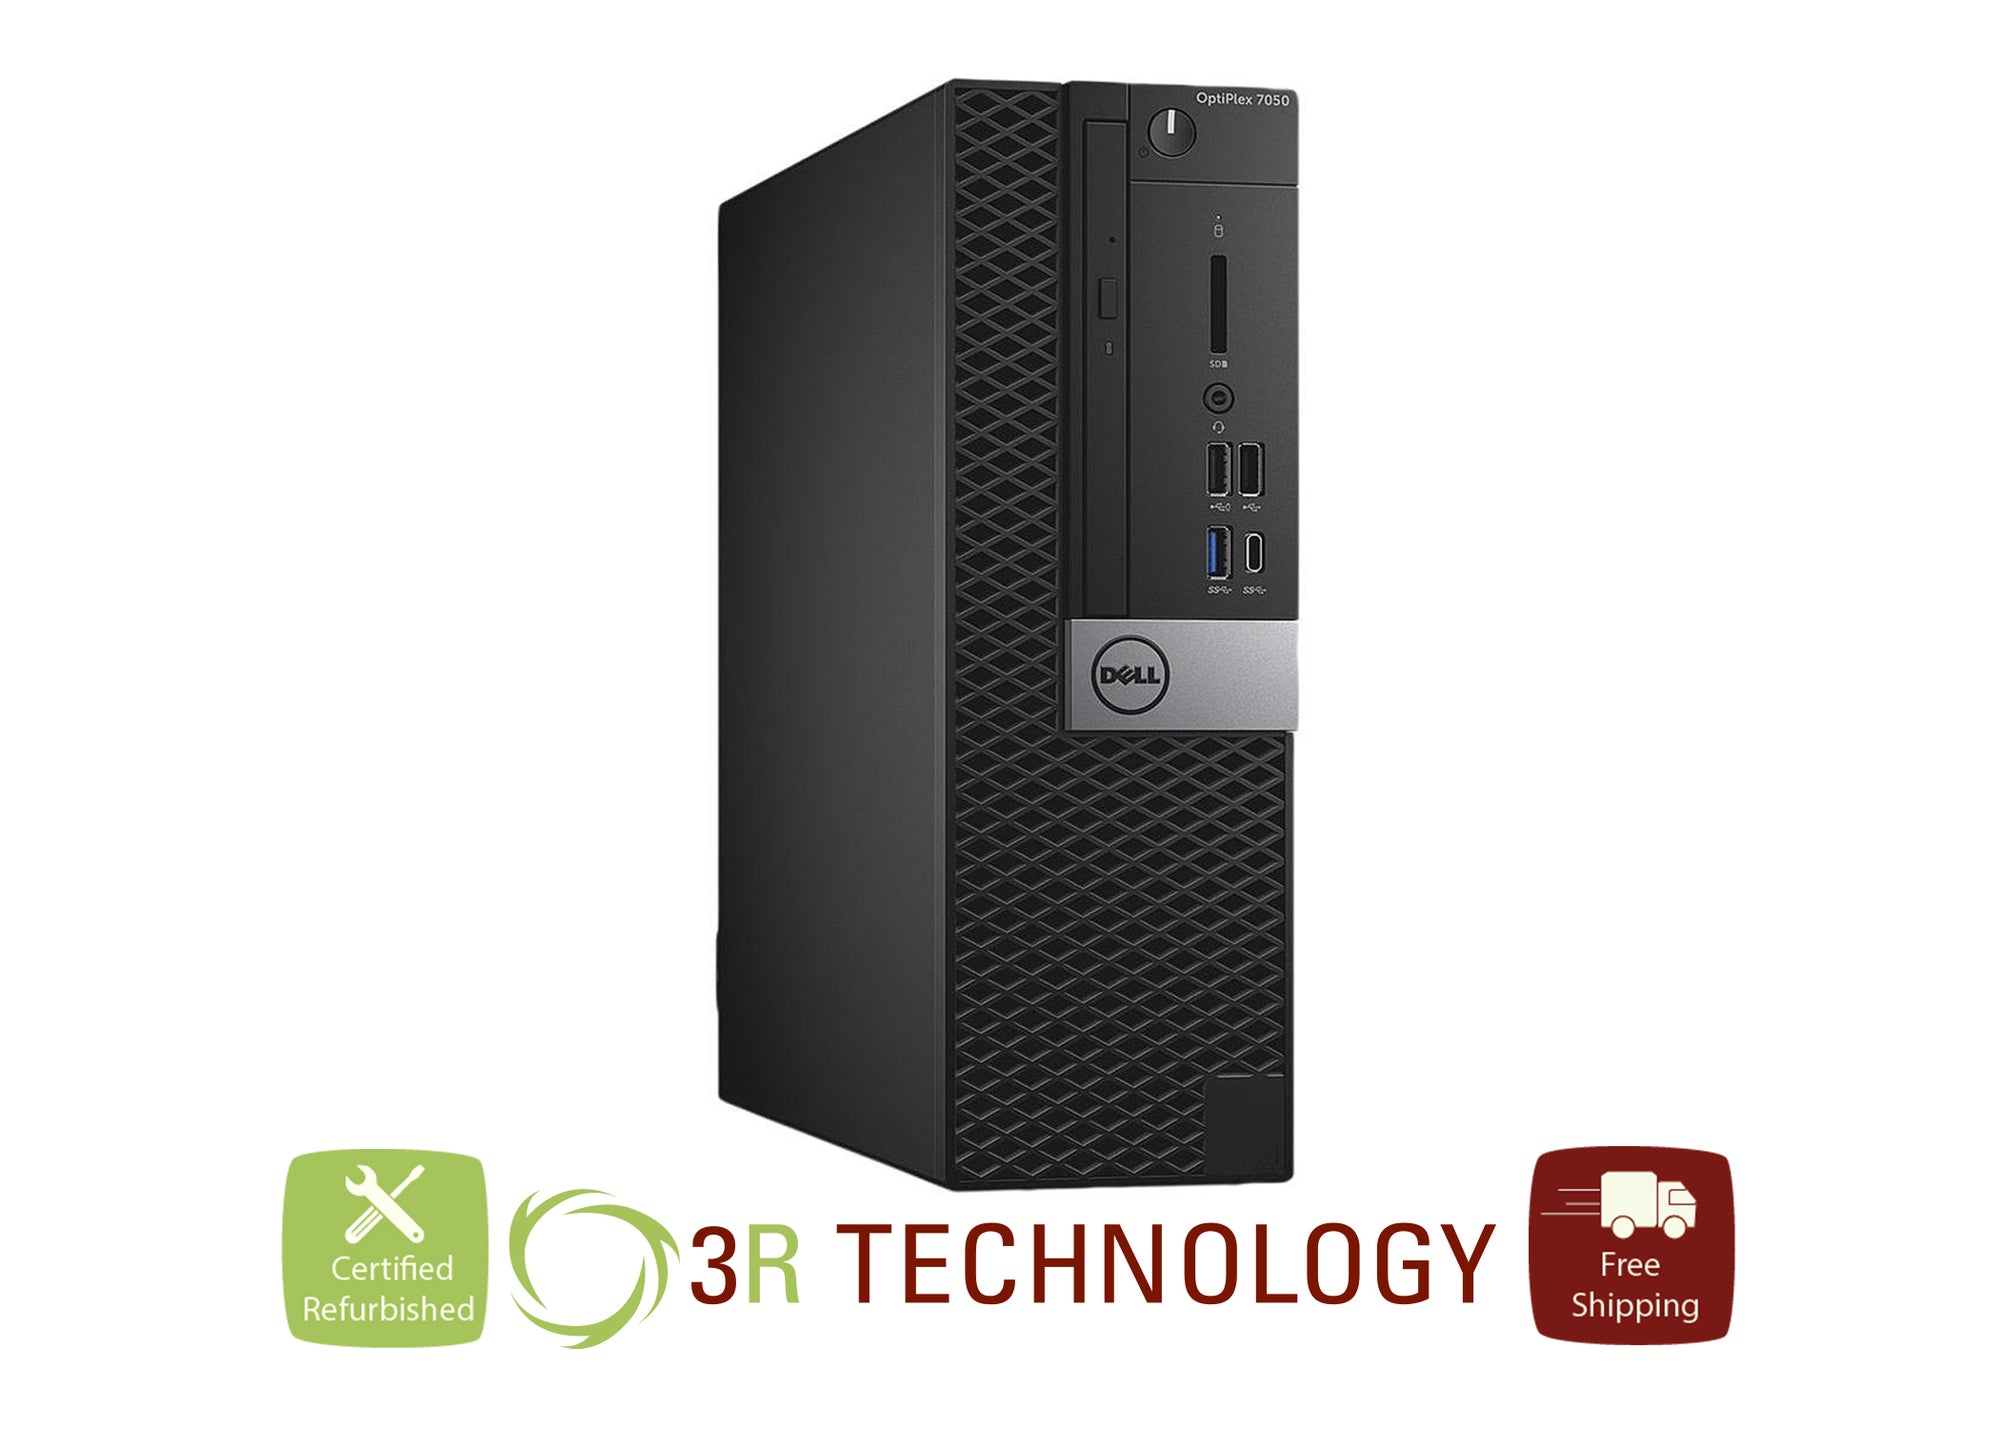 Dell Optiplex Desktop 7050 Intel i5 6th Gen. 1 Terabyte HD and 128 GB SSD, 16GB RAM Win 10 Pro